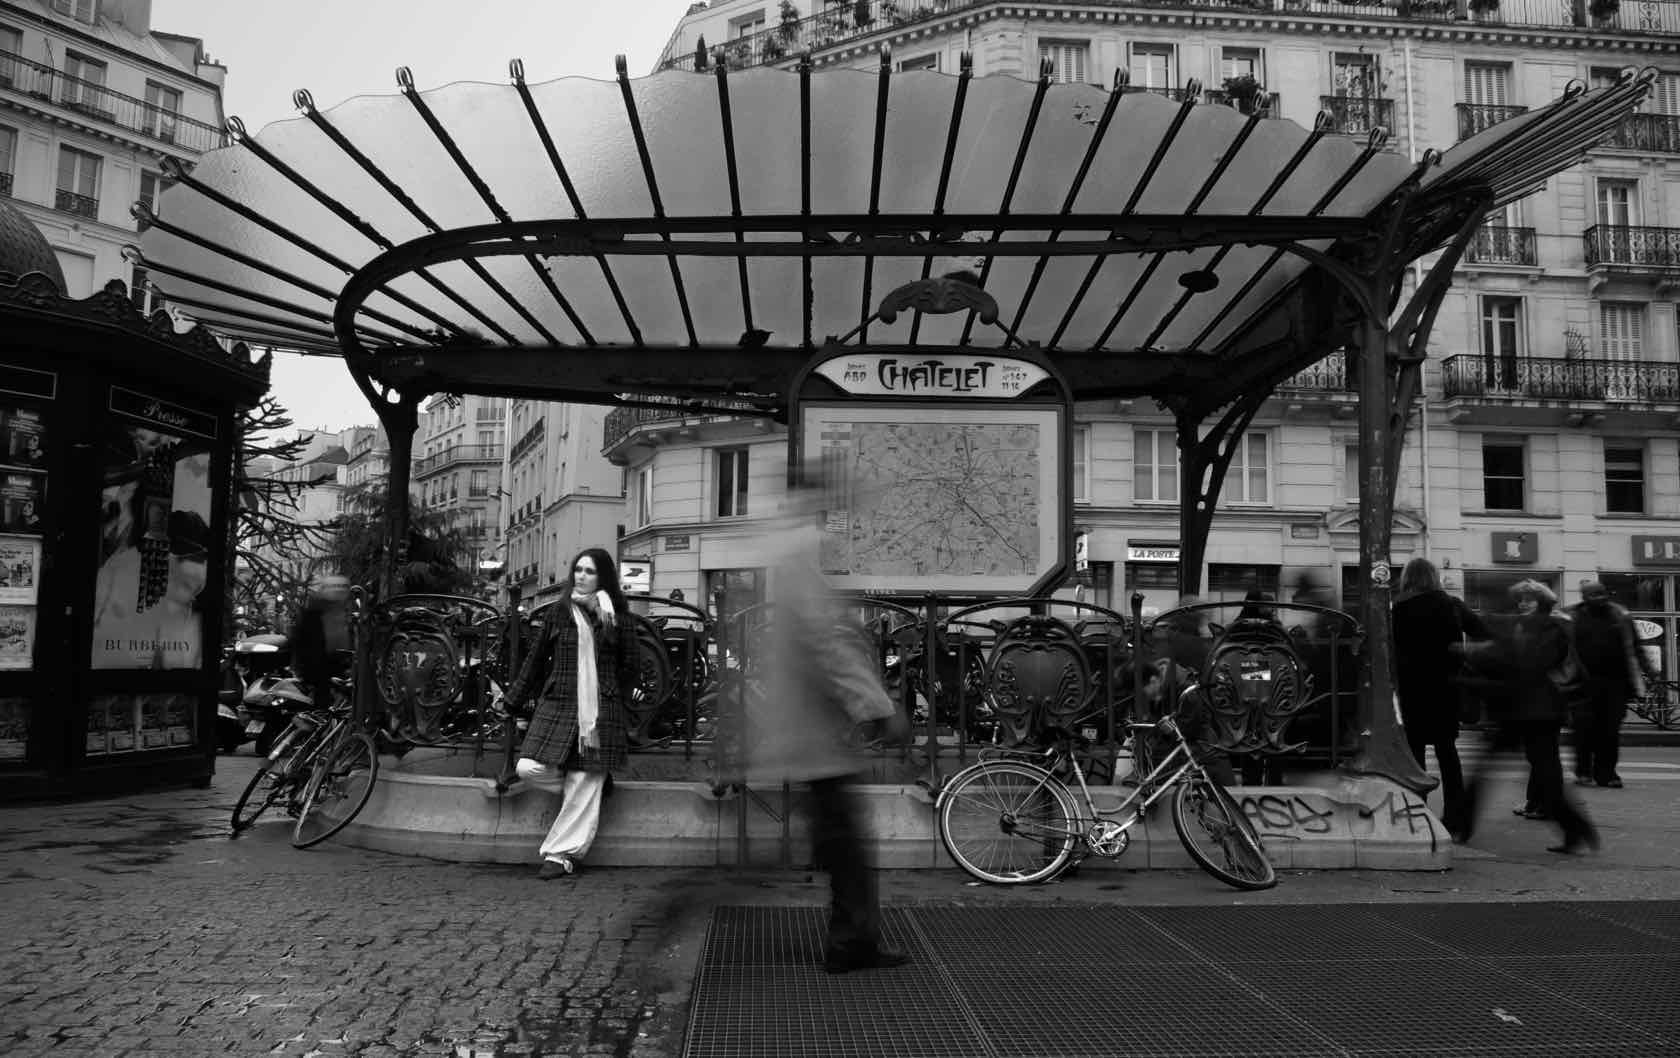 Paris Metro Station Entrance Chatlet